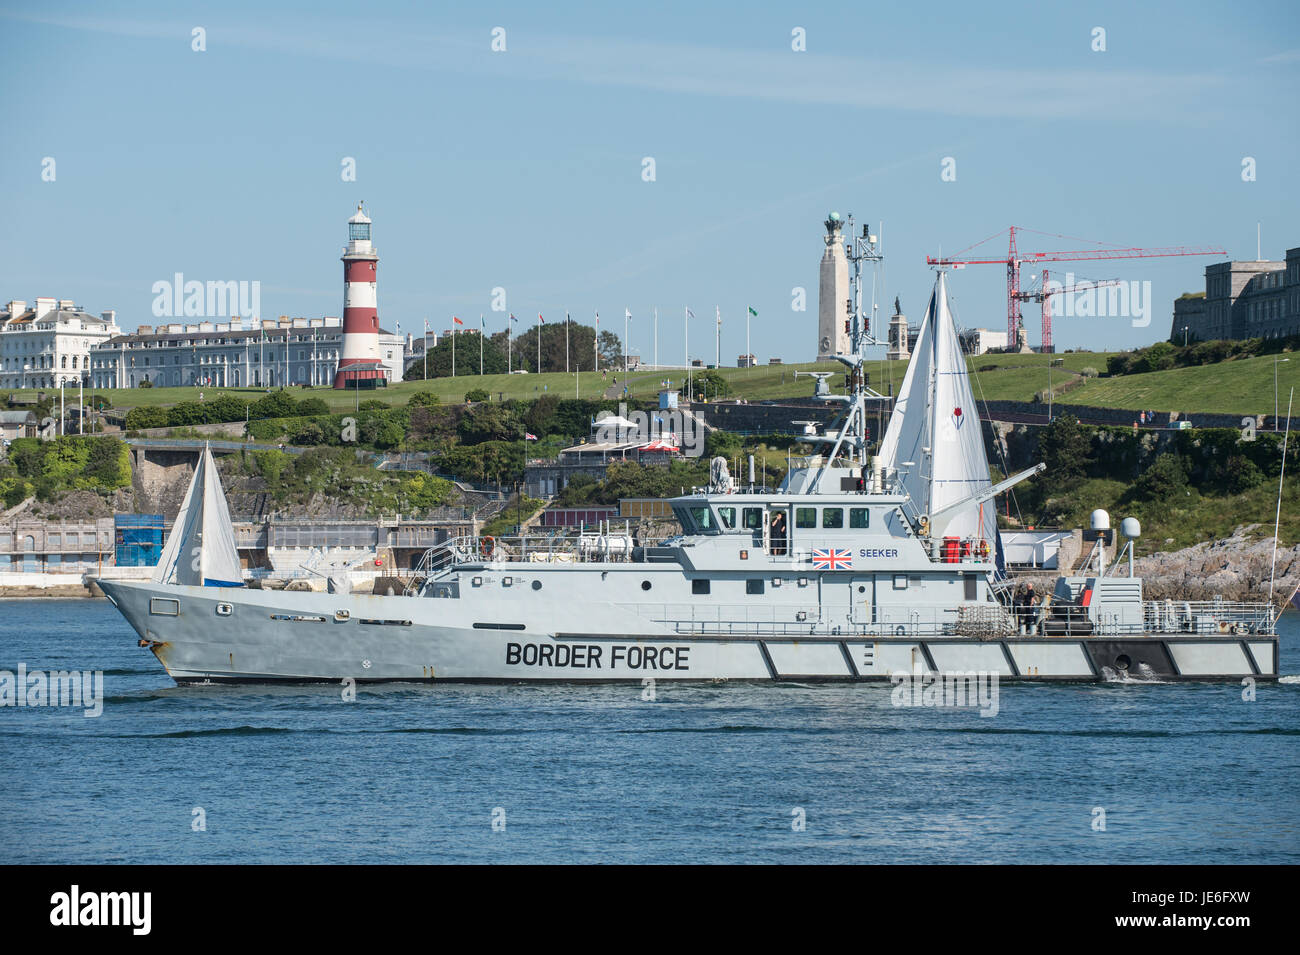 Paul Slater/PSI -  Border Force ship Seeker pictured in Plymouth Sound, Devon. - Stock Image